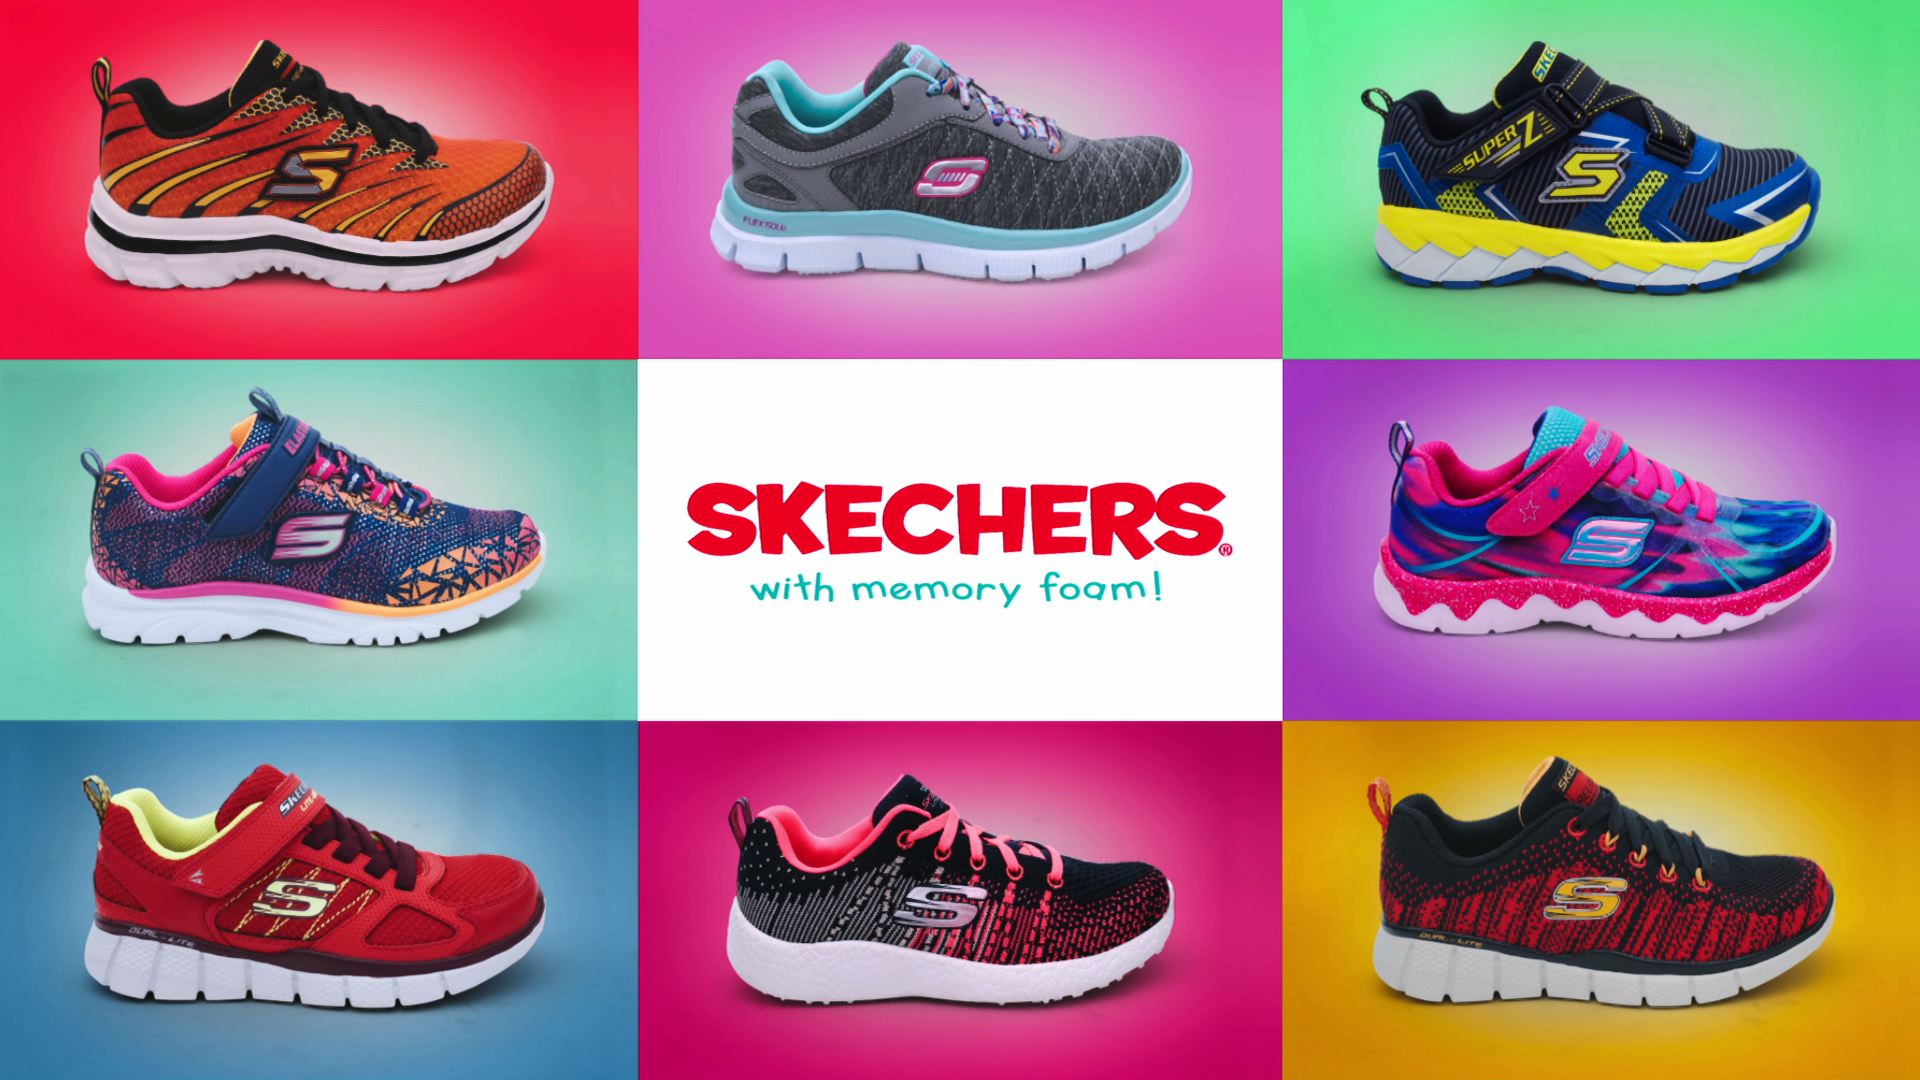 new skechers commercial 2017